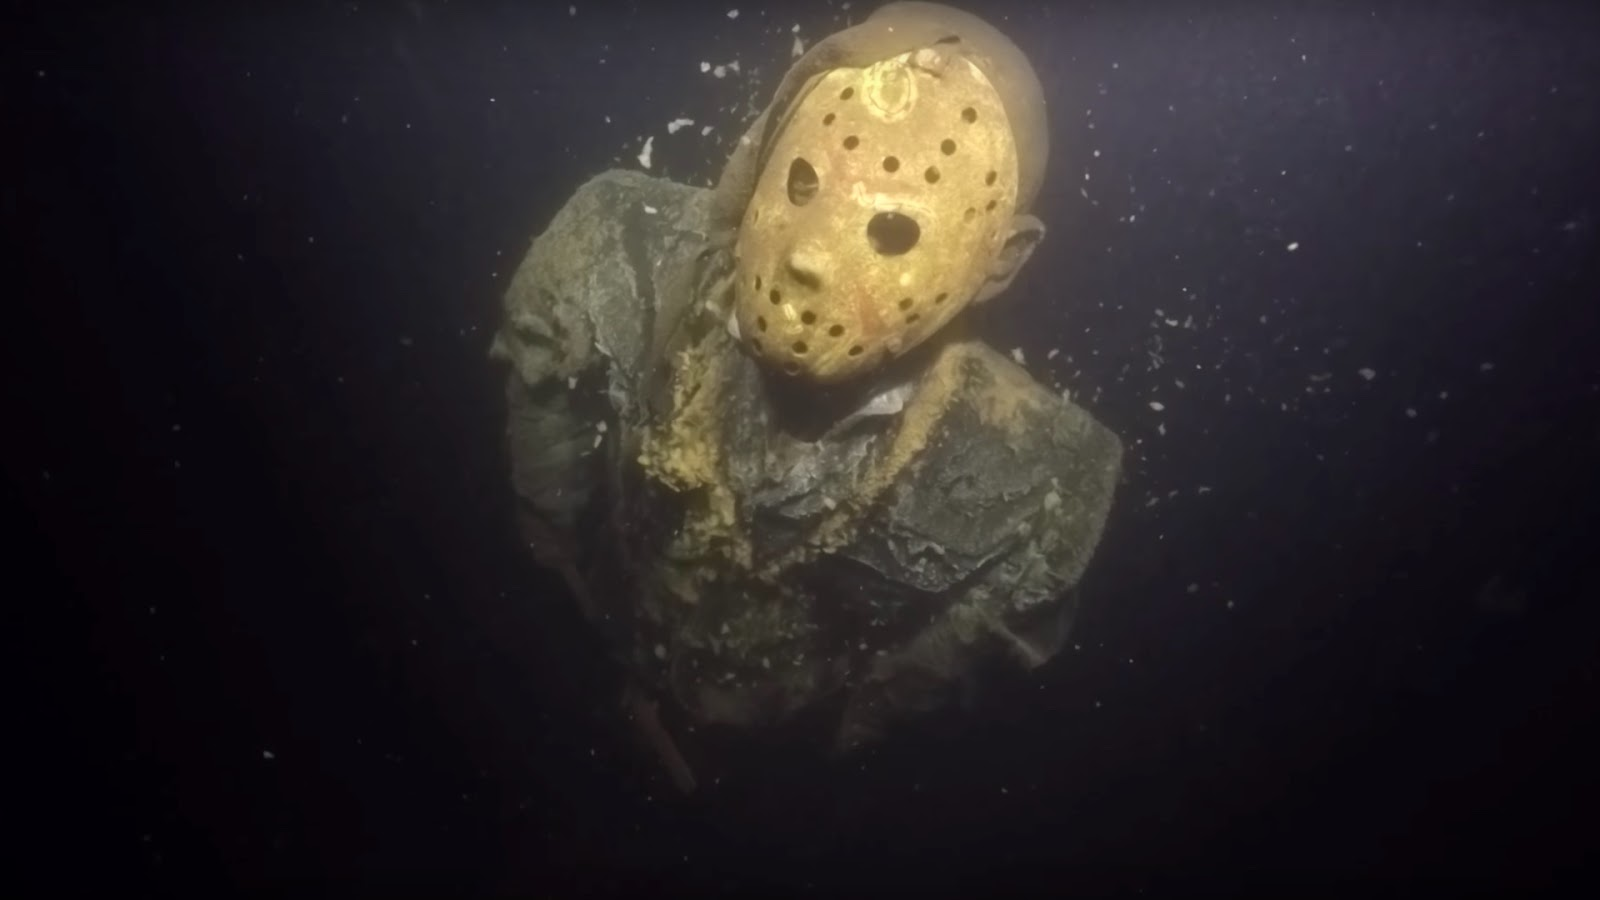 Jason lives, Friday the 13th, crystal lake